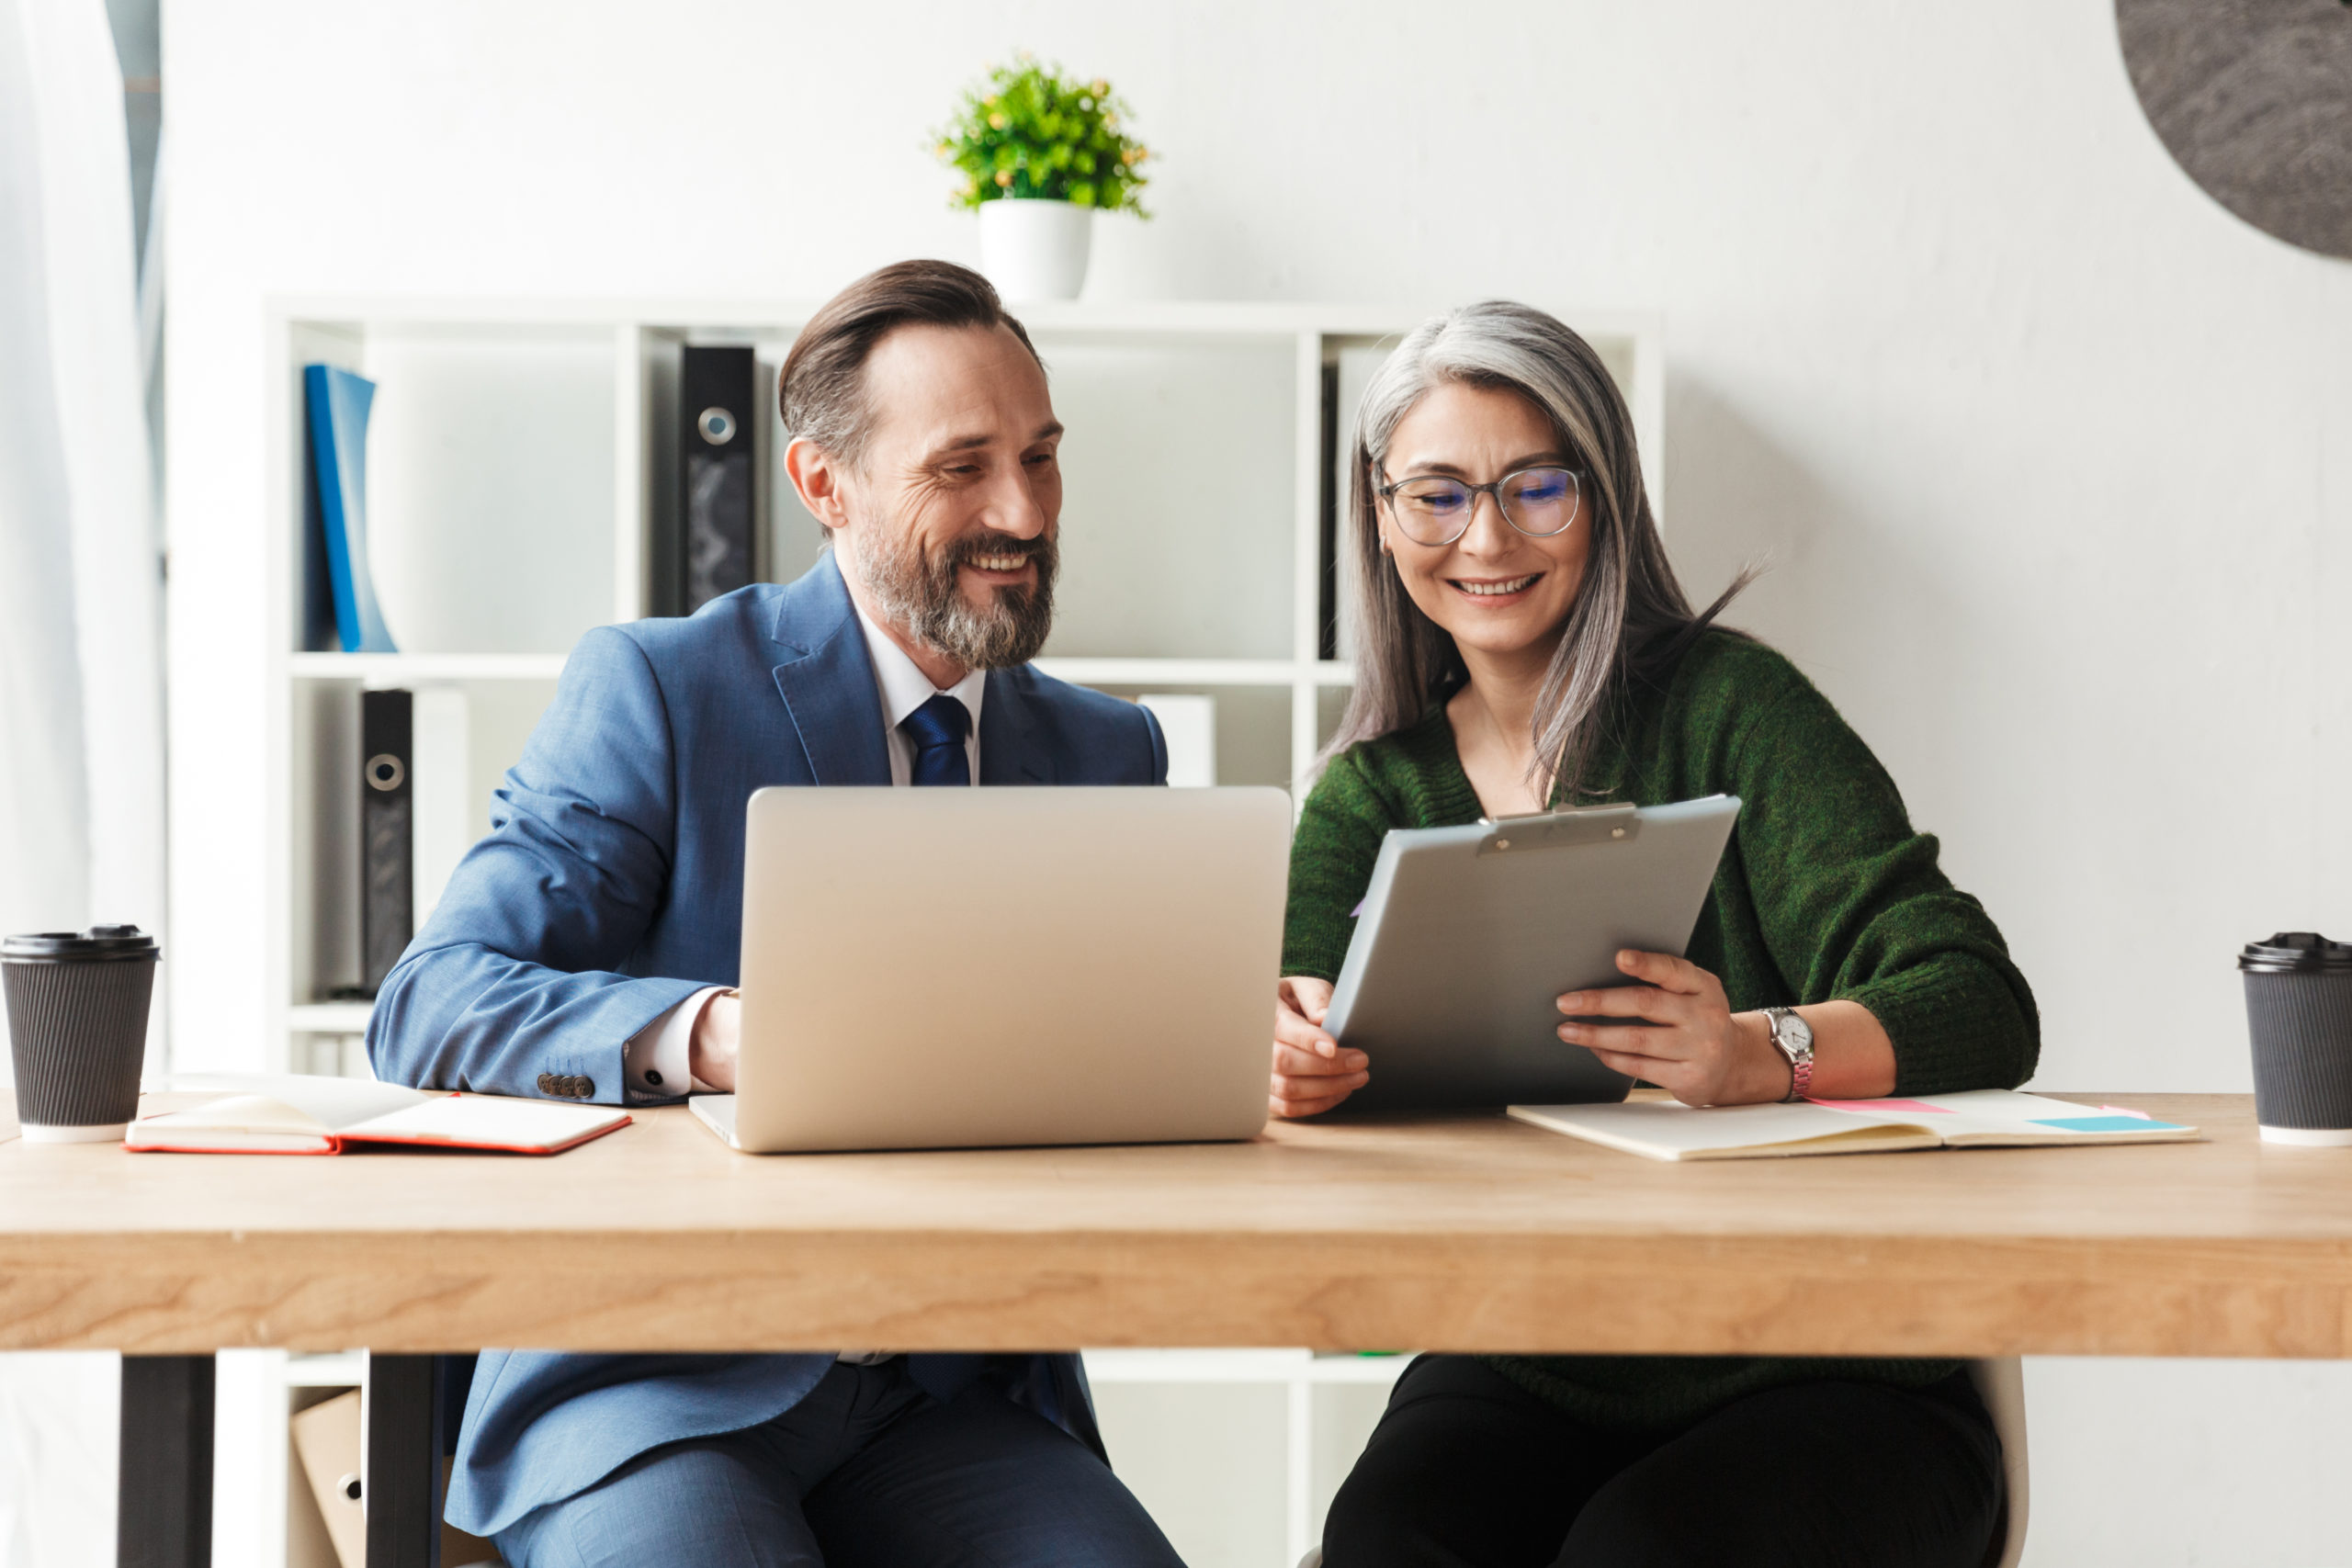 Adults smiling colleagues talking while working with laptop and documents in office